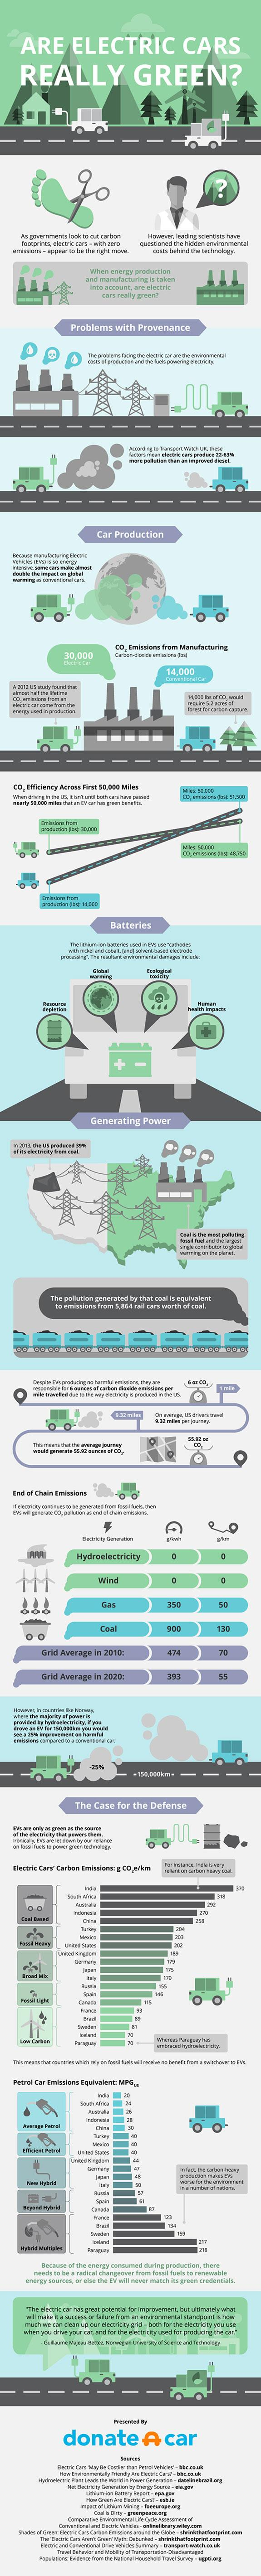 Are-Electric-Cars-Really-Green-infographic-by-Donateacar